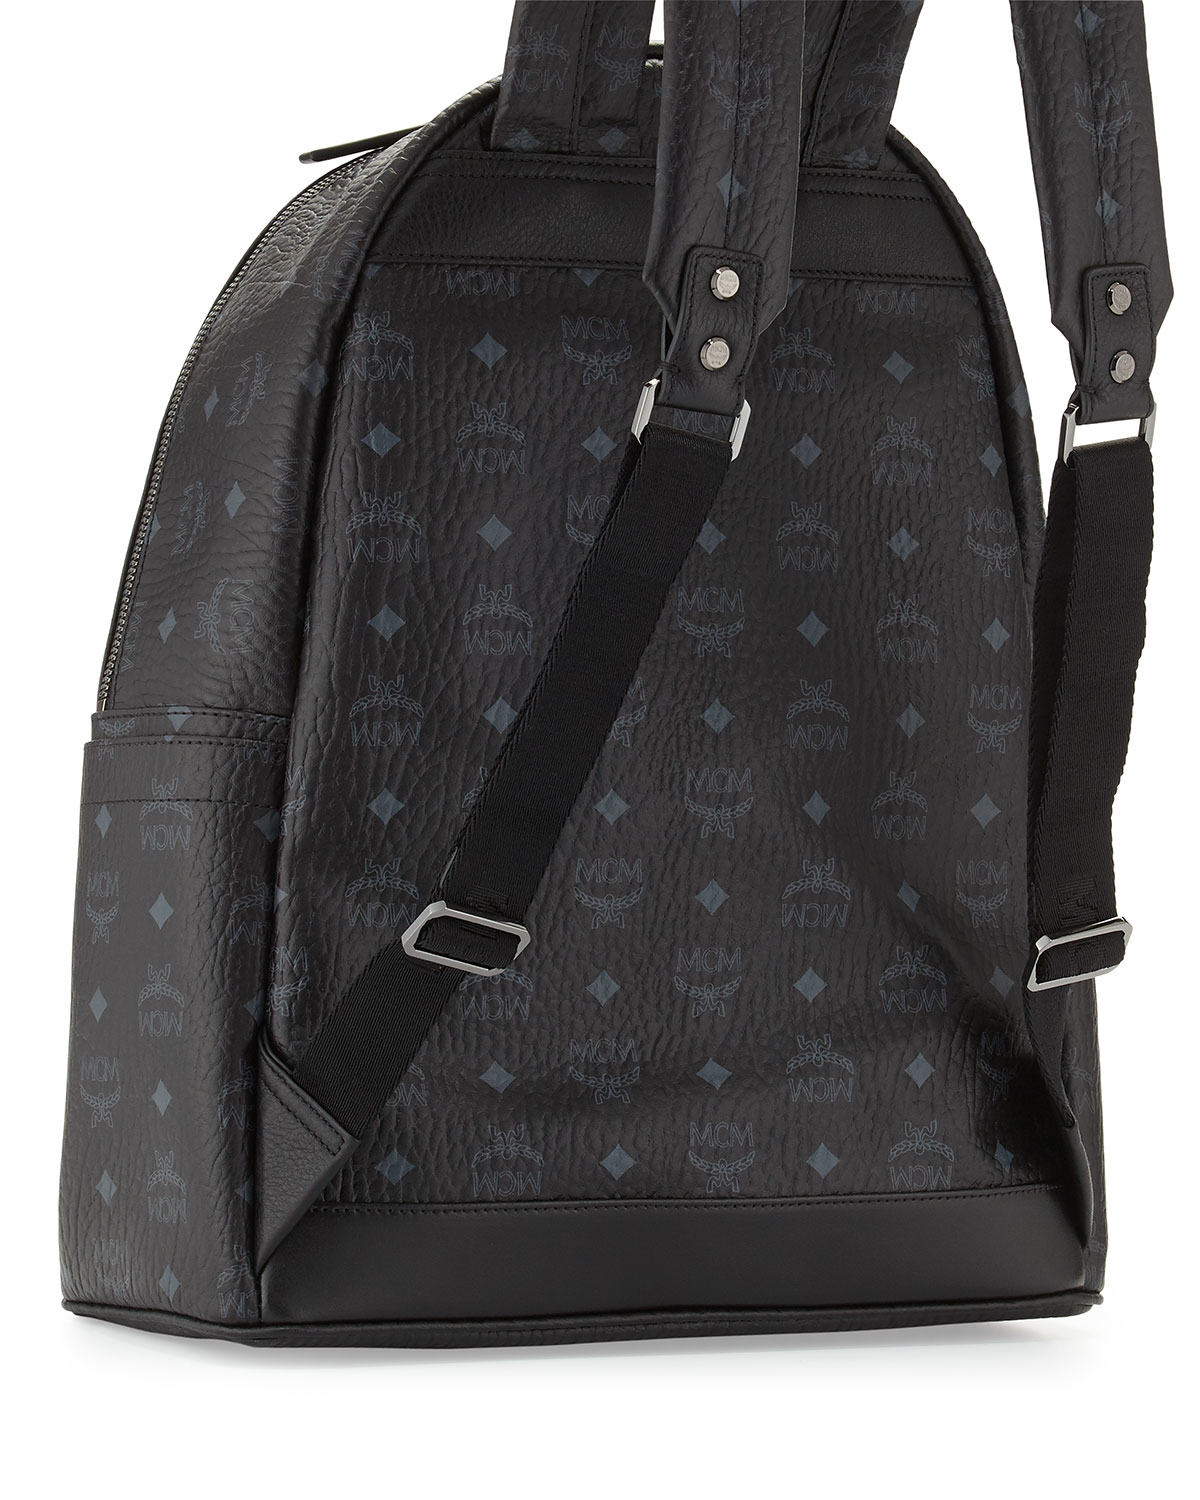 MCM Stark Small No Stud Backpack HEX77qy